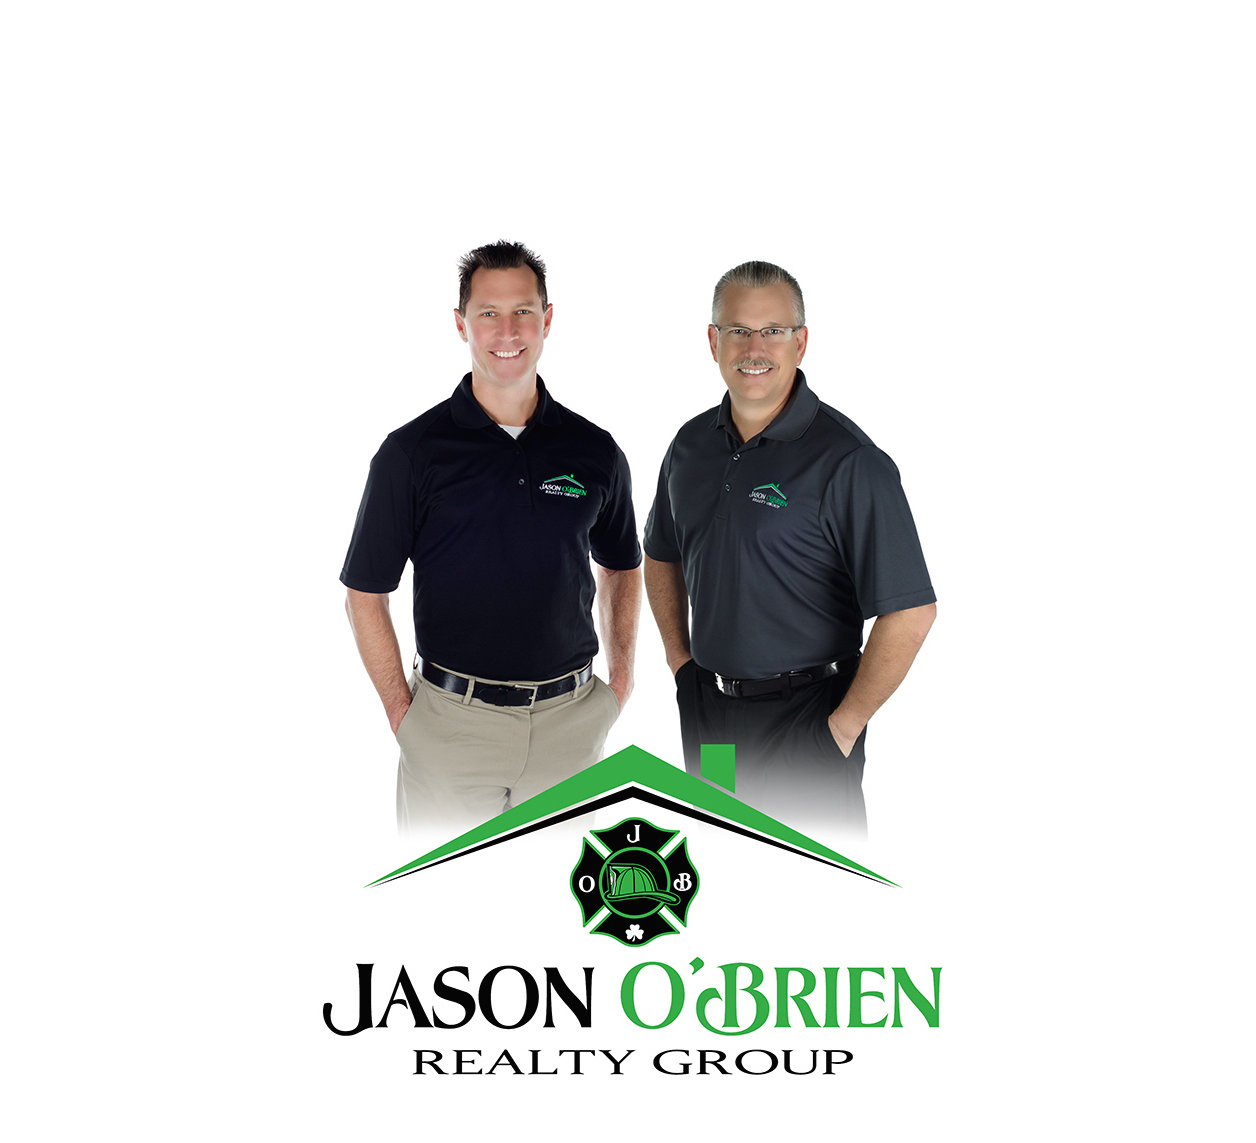 JASON OBRIEN | JASON OBRIEN REALTY GROUP